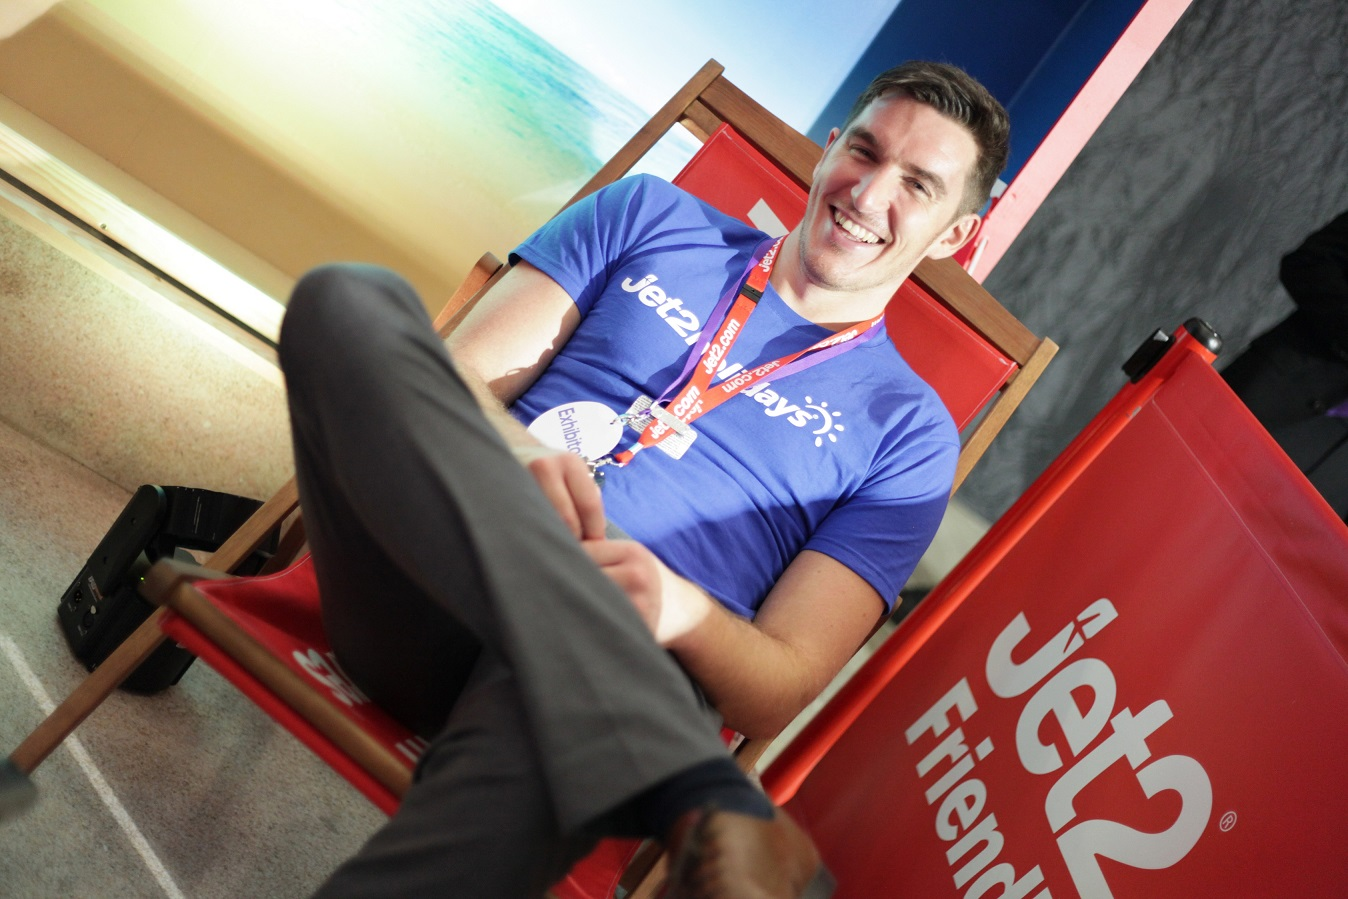 Johnathan Nicolson from Jet2.com and Jet2holidays takes a breather at Leeds Digital Job Fair 2.0 last October